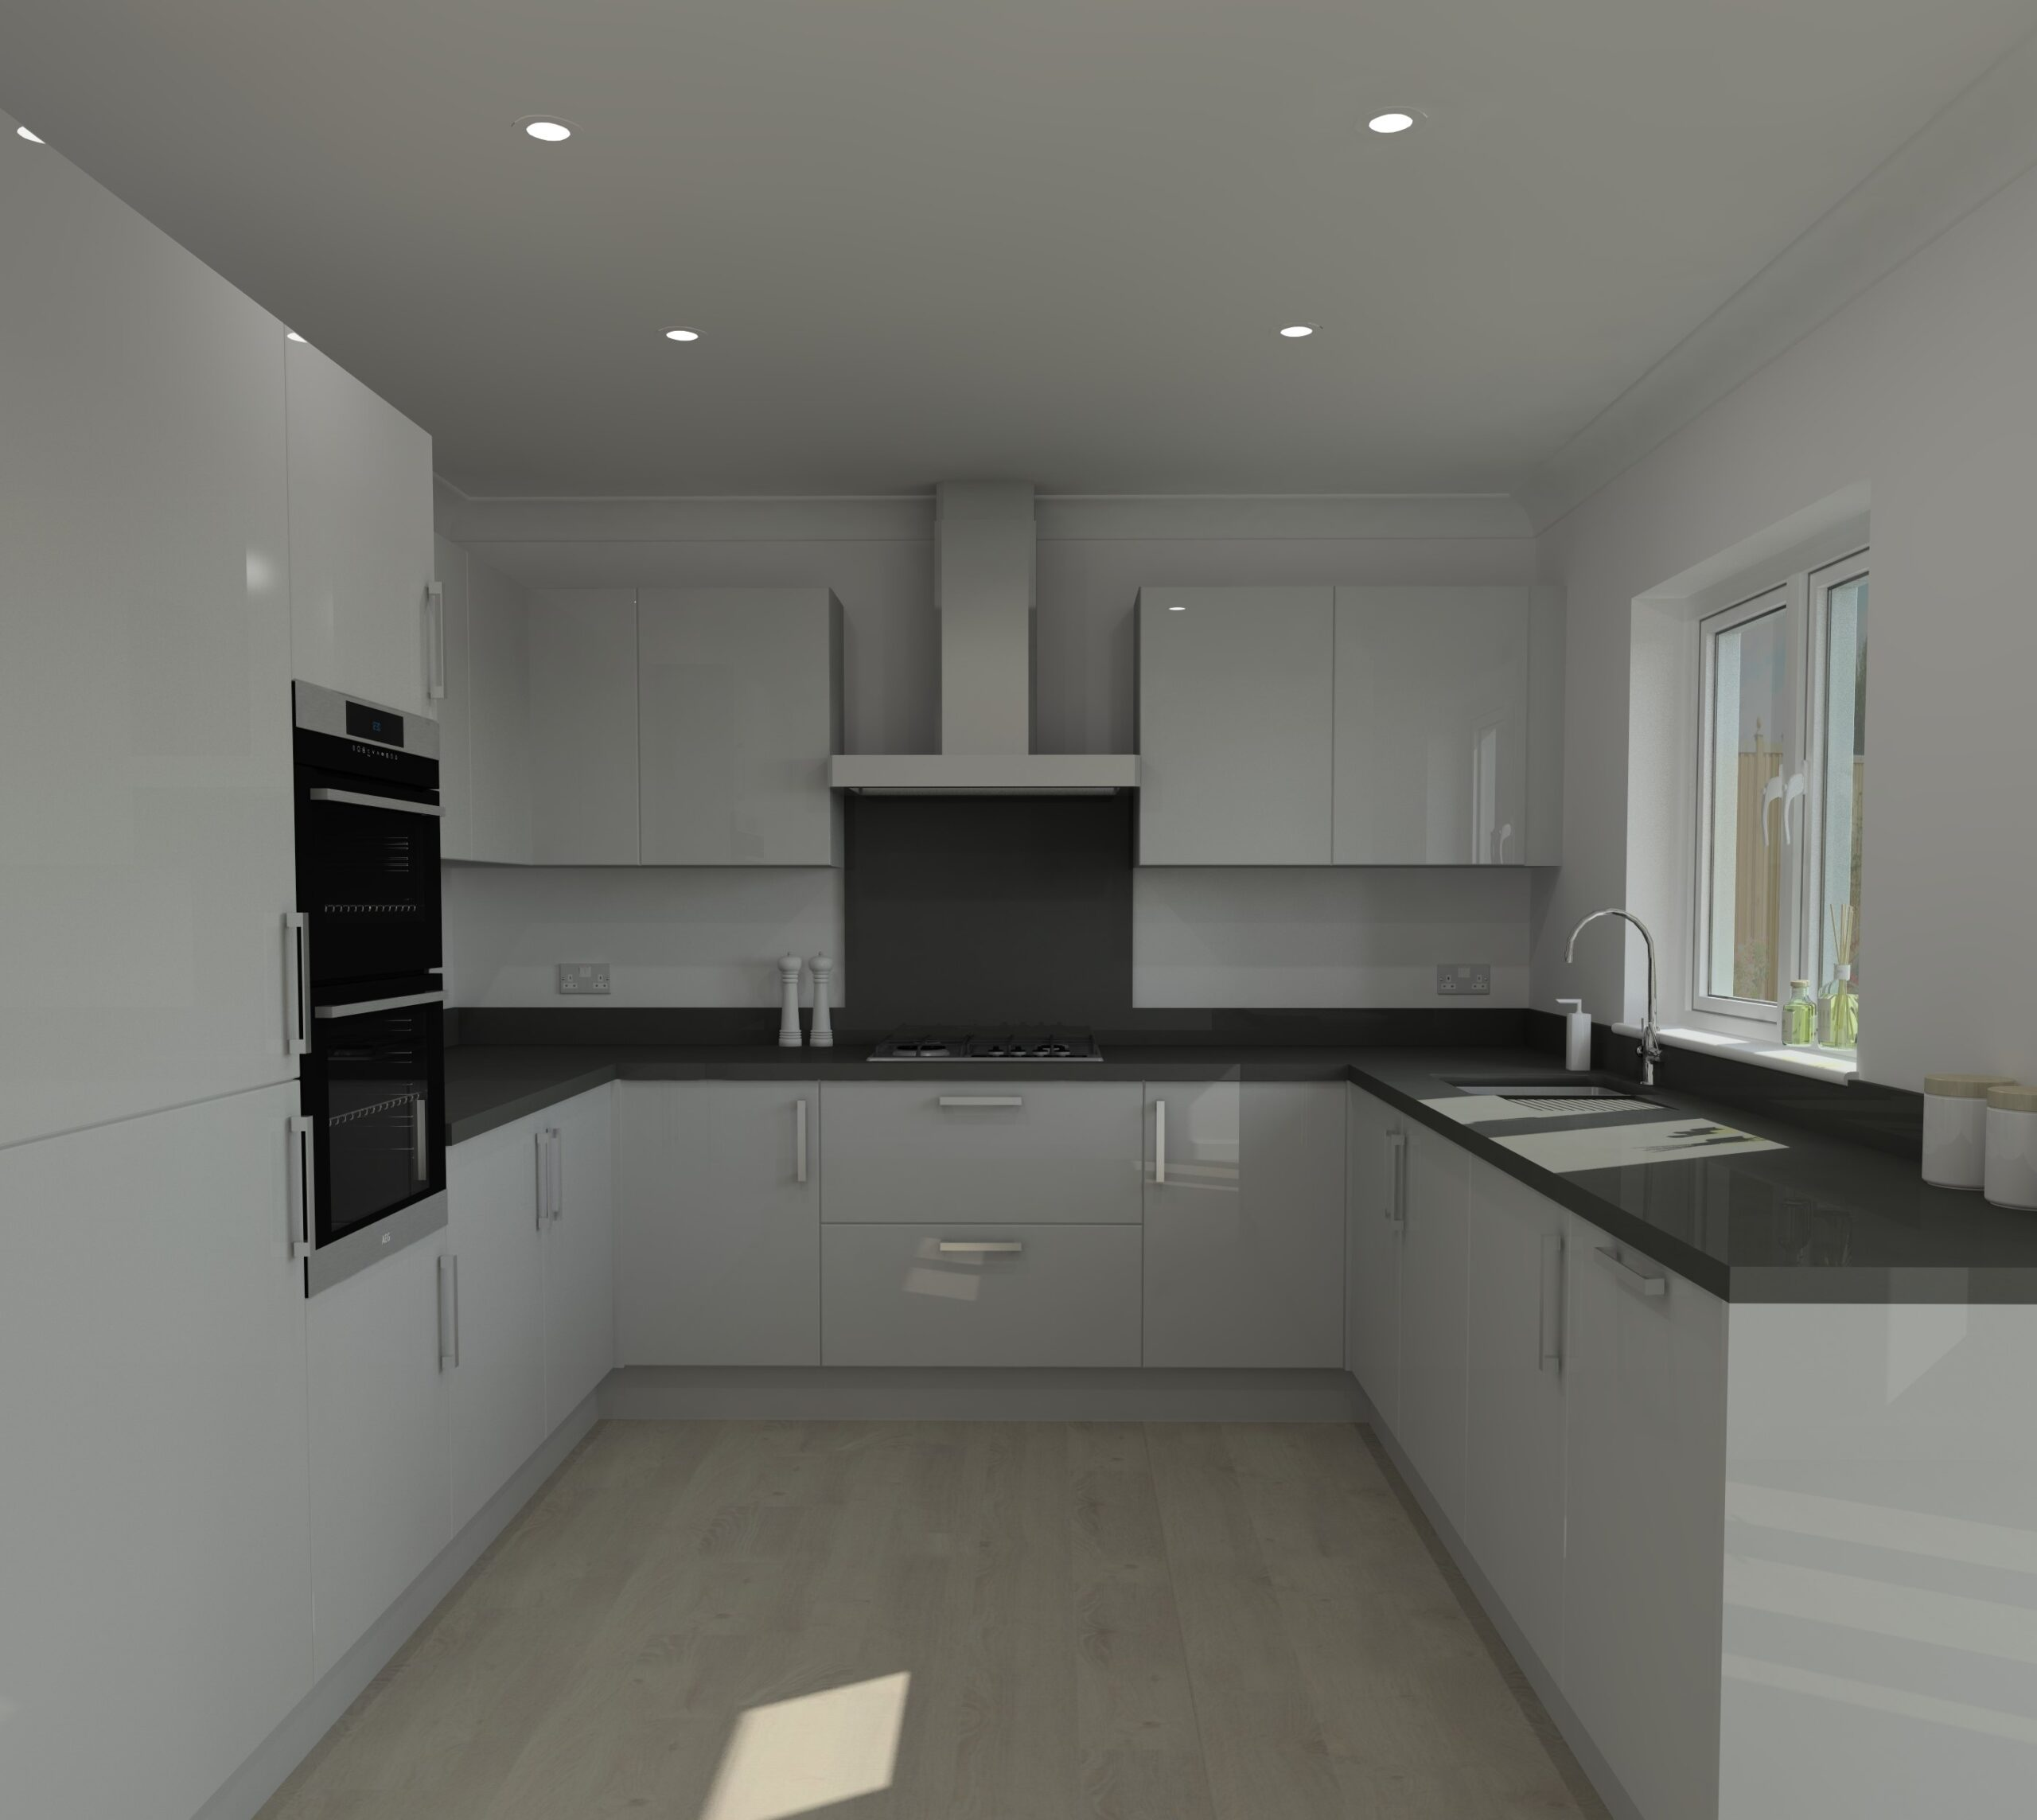 Social and Contract Housing render